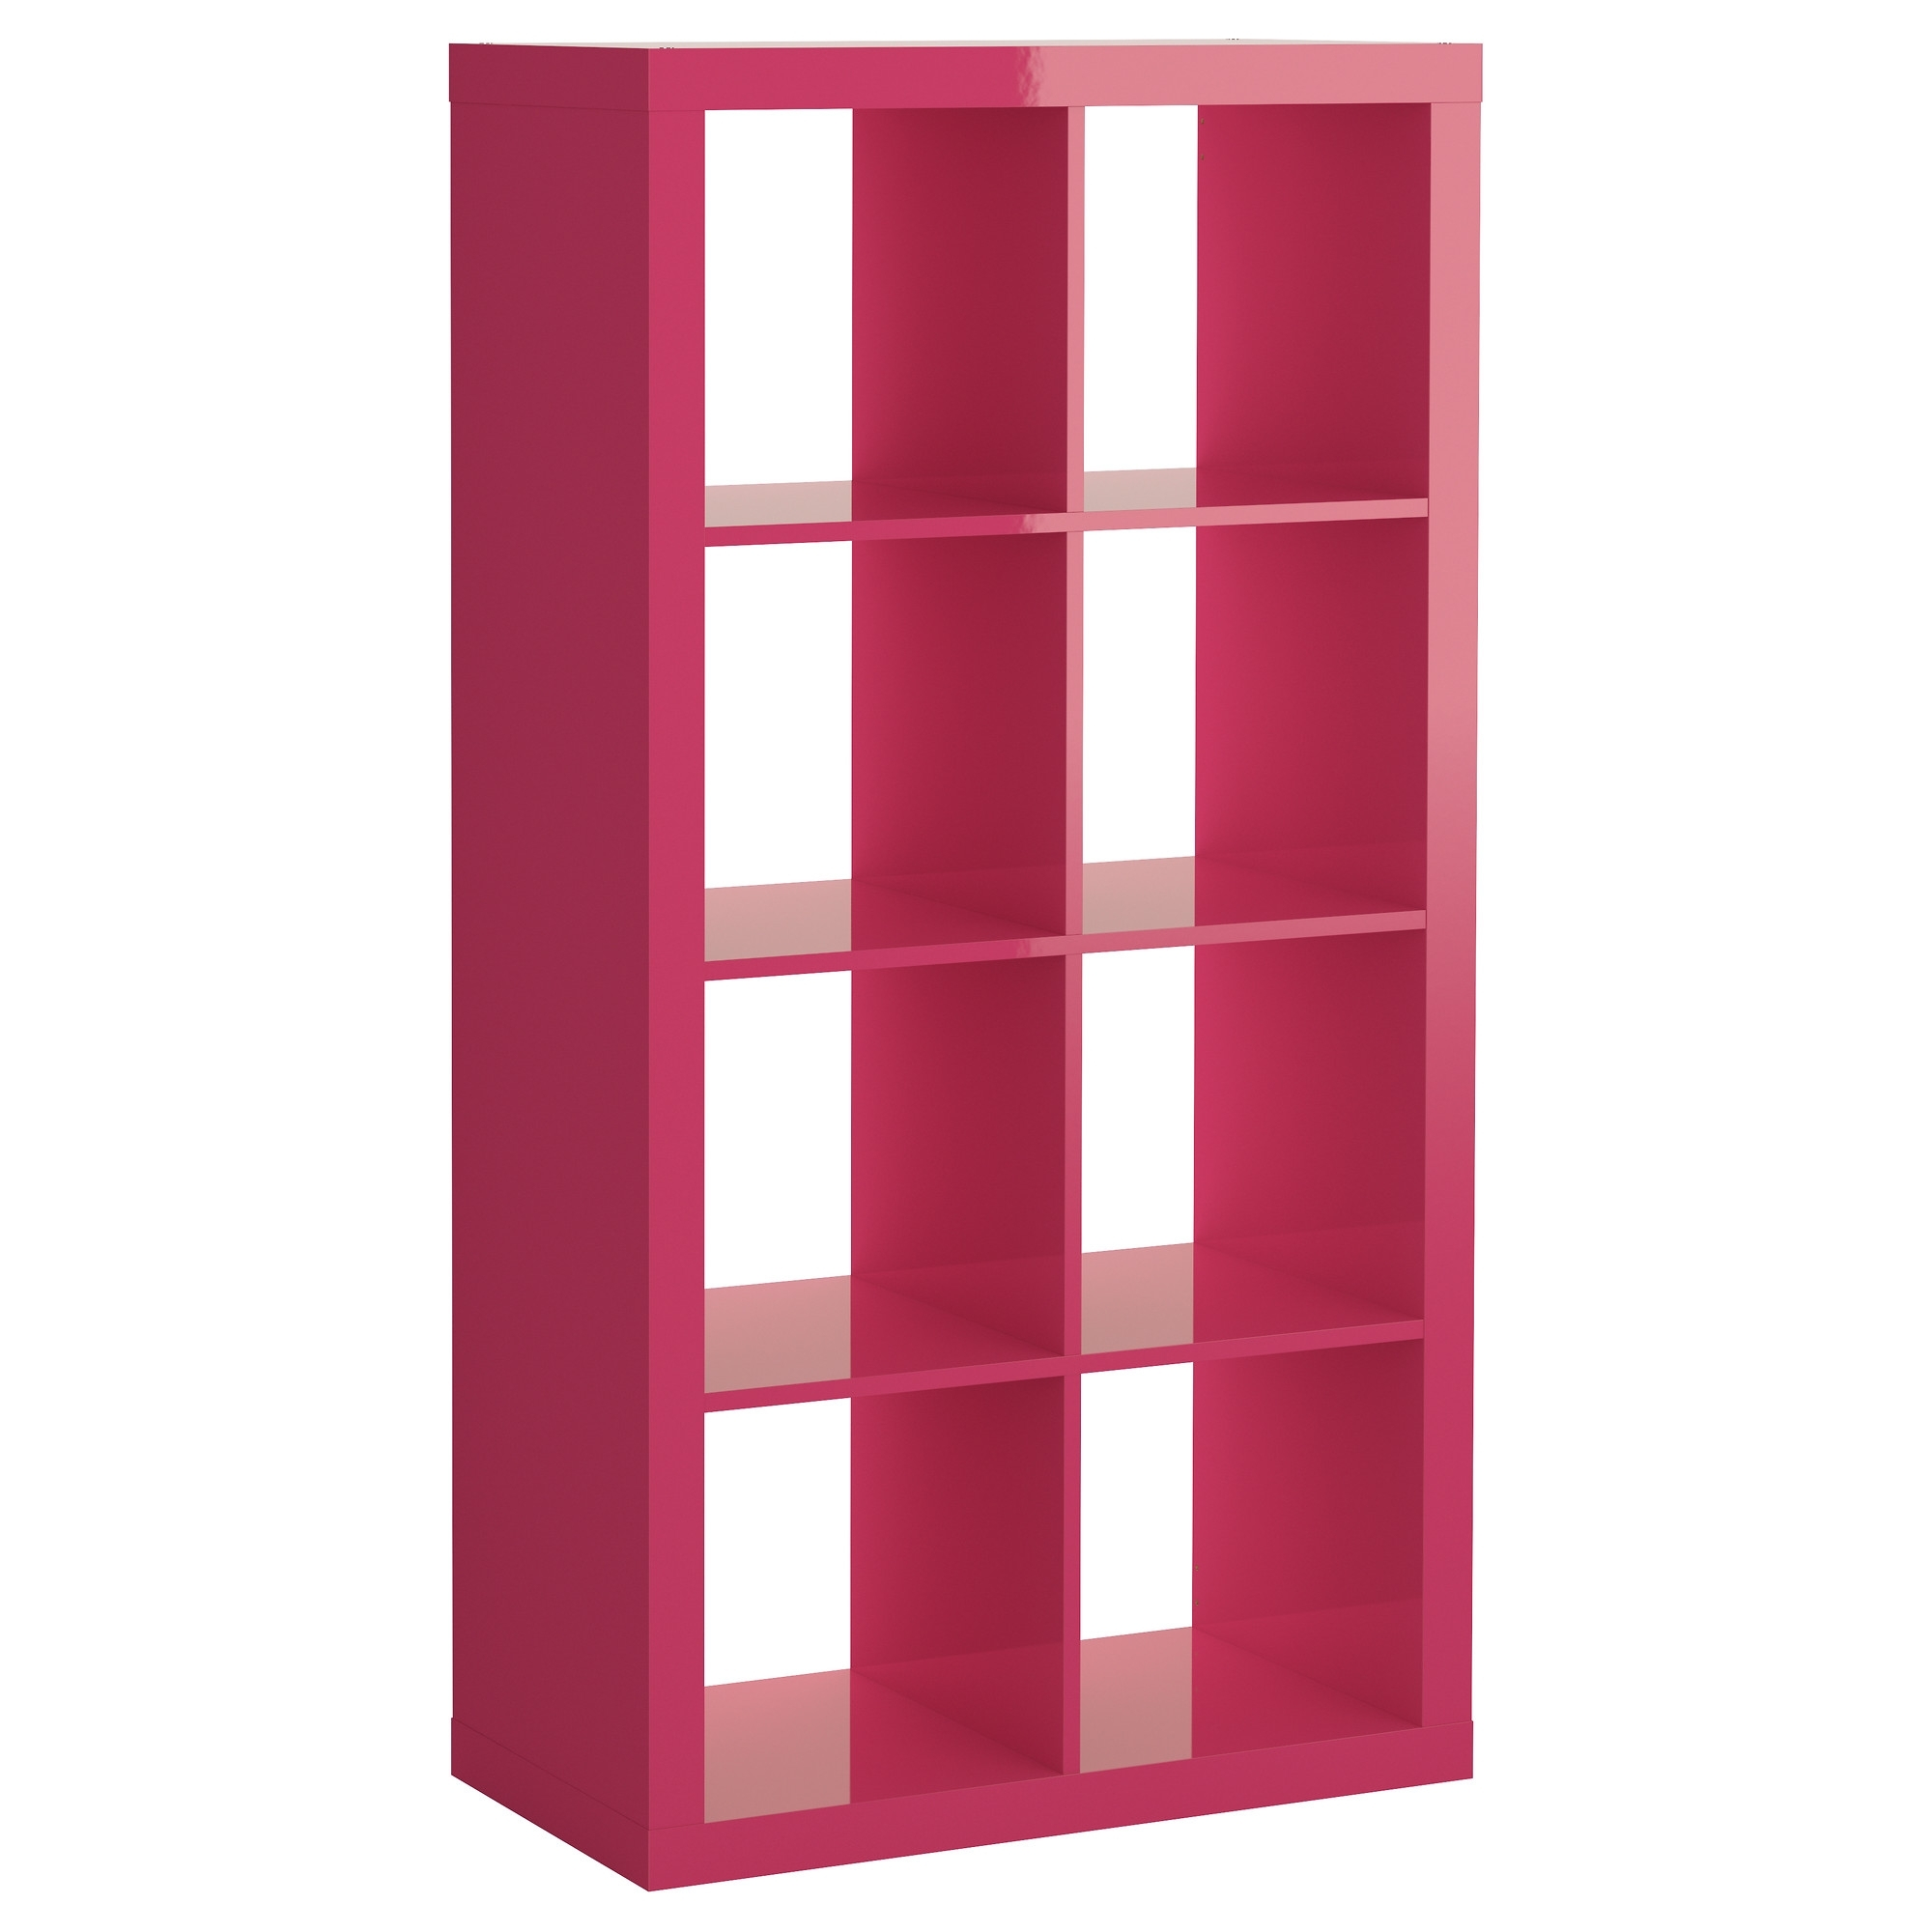 bookcase system childrens products cm gb with children storage white stuva pink drawers en spr fritids ikea light